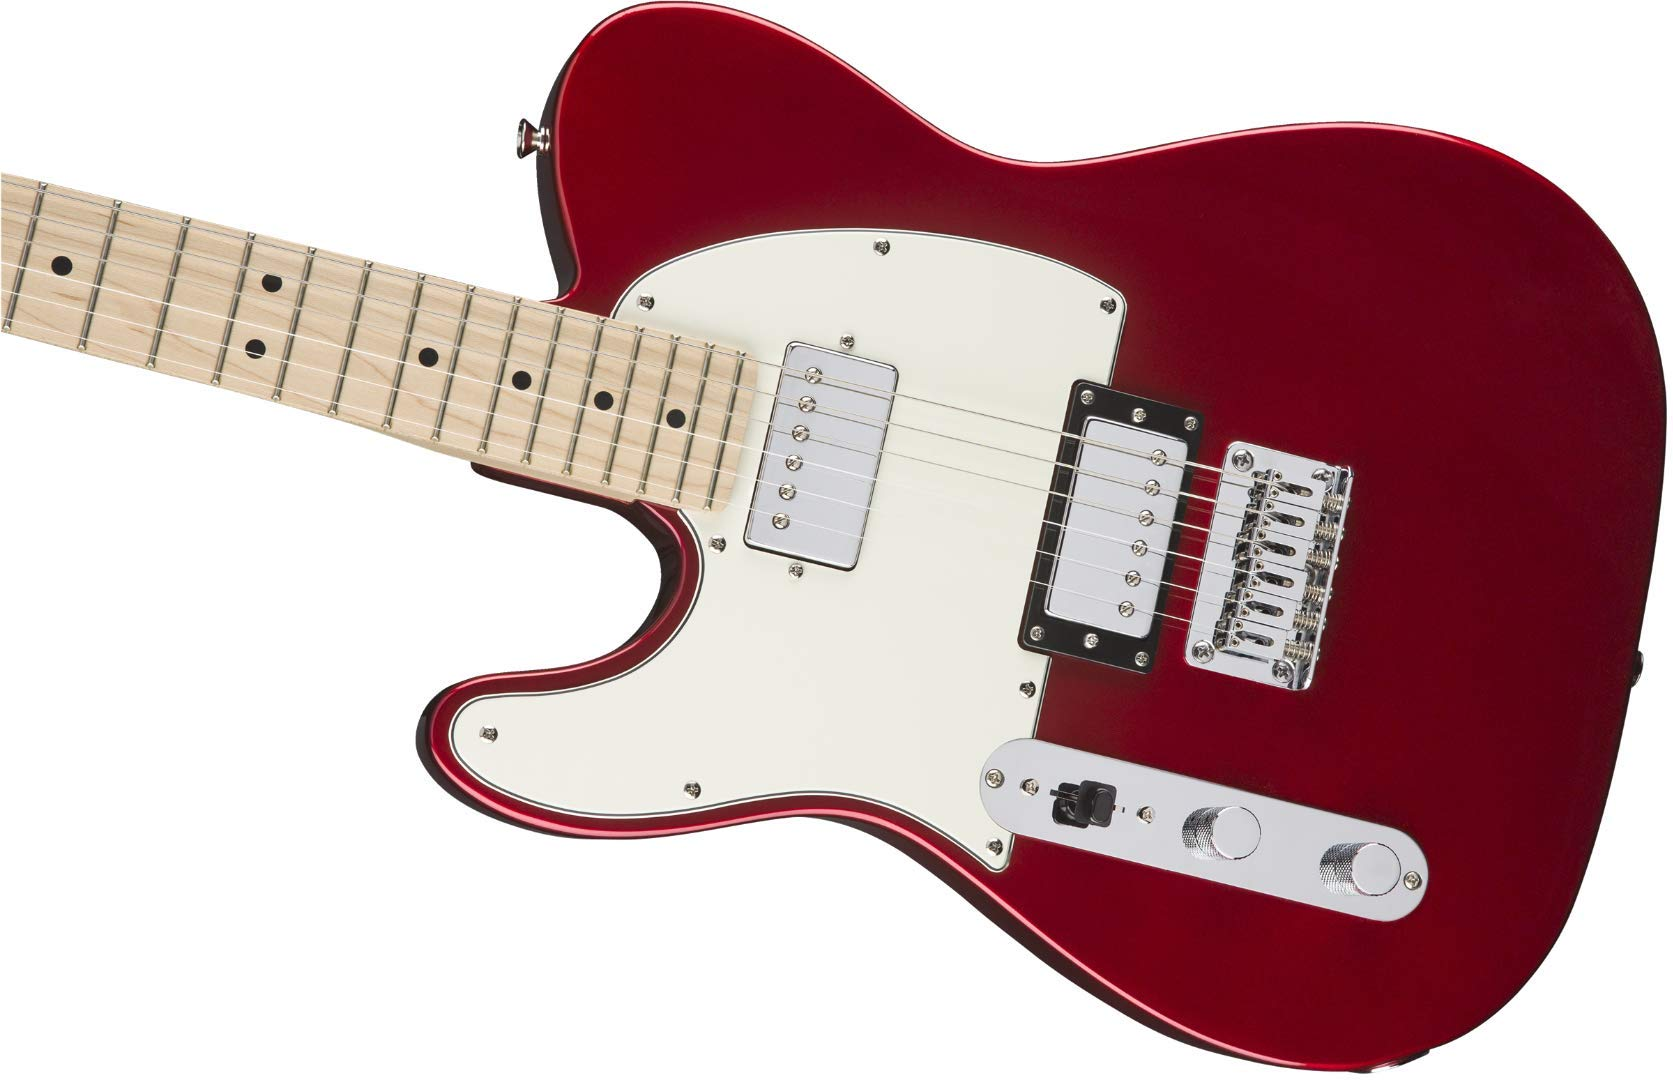 Cheap Squier by Fender Contemporary Telecaster HH Electric Guitar - Maple Fingerboard - Dark Metallic Red - LH Black Friday & Cyber Monday 2019